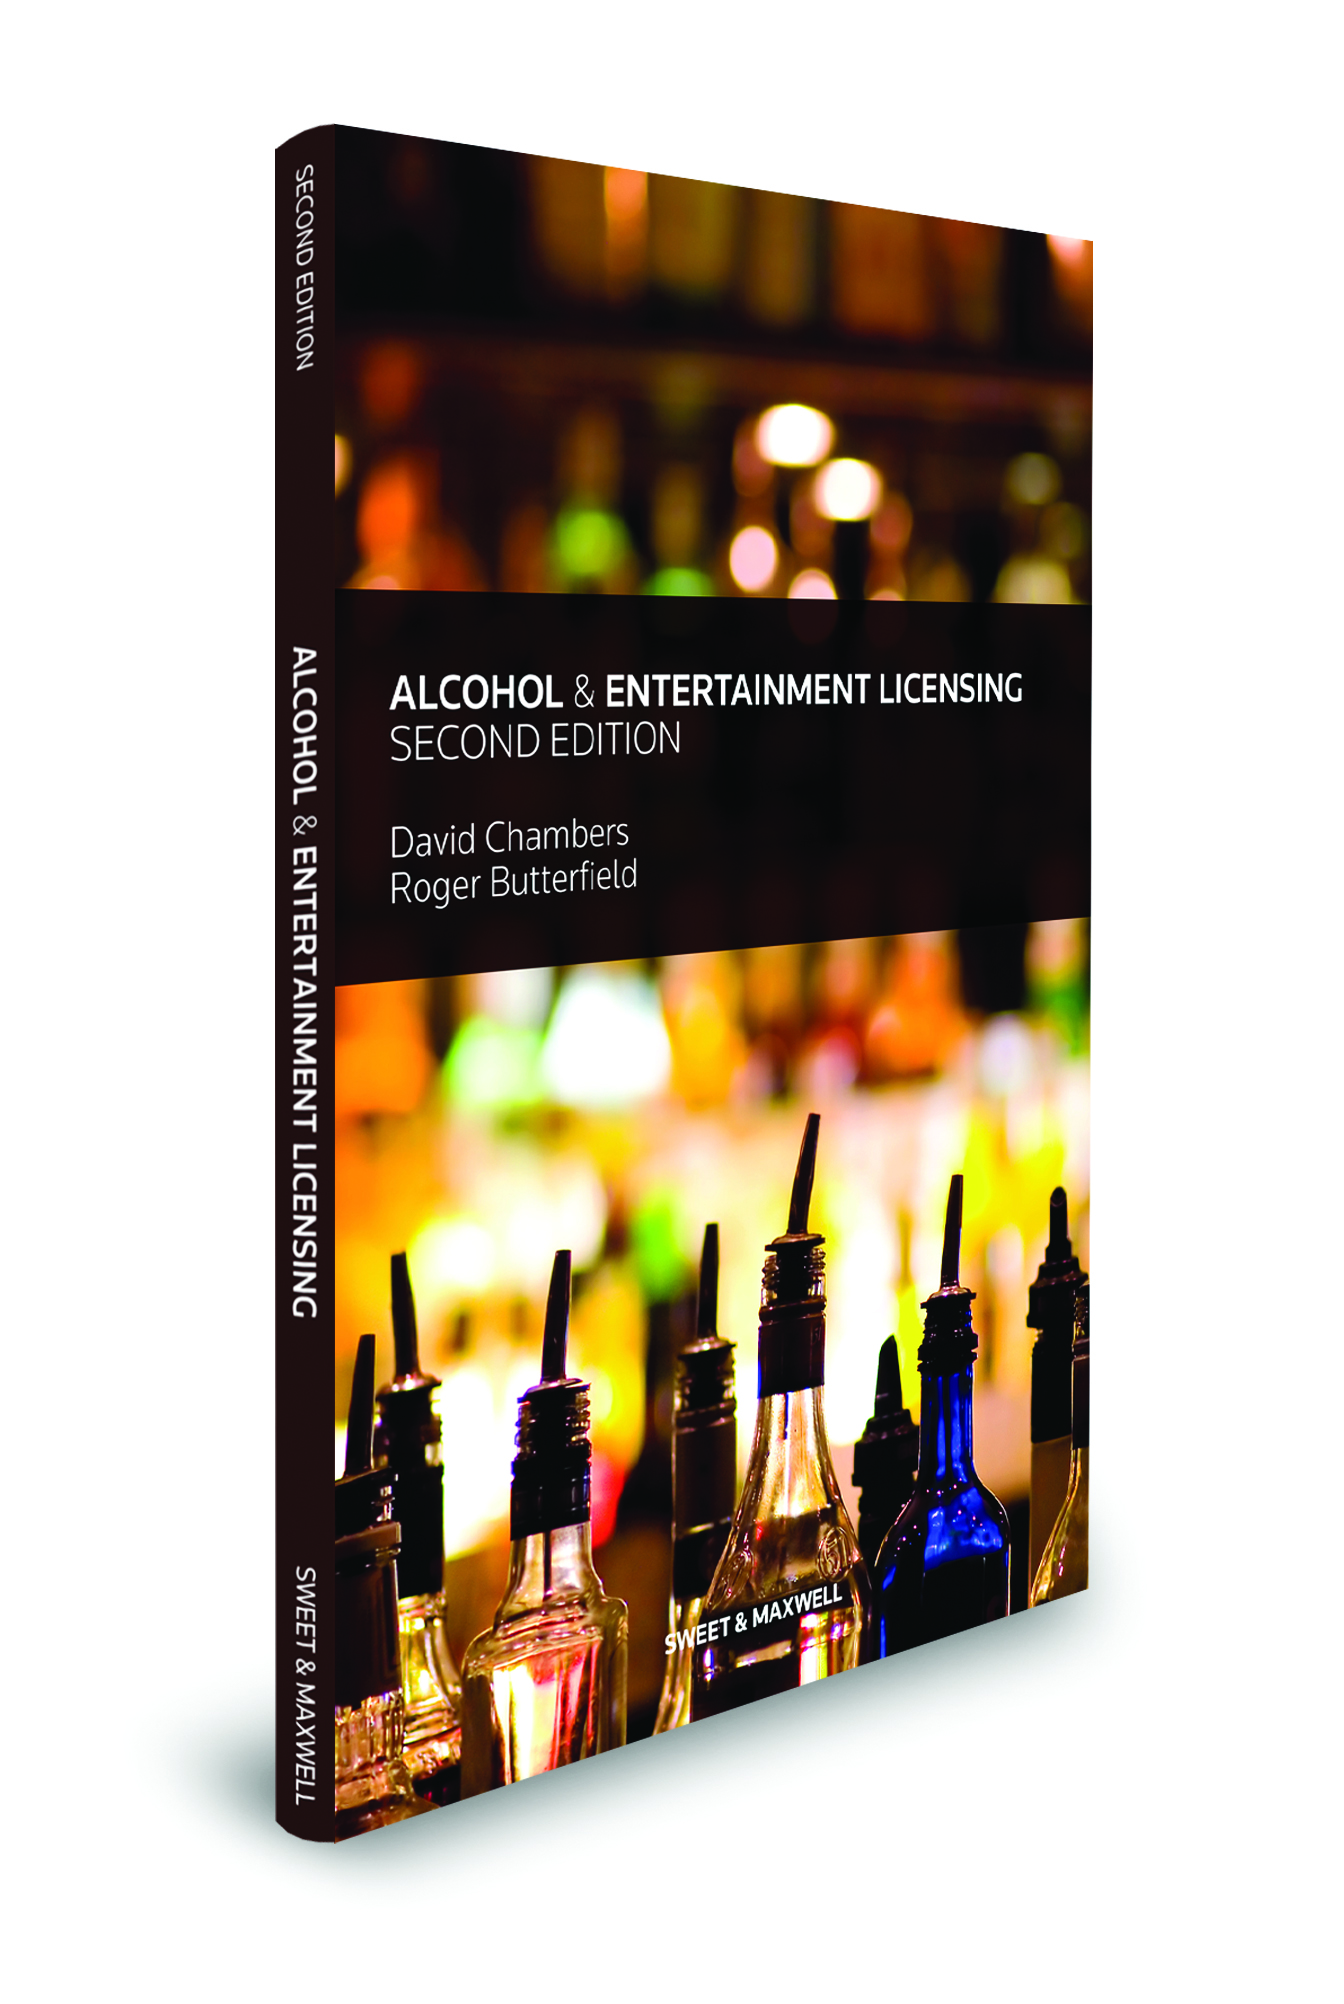 Alcohol & Entertainment Licensing